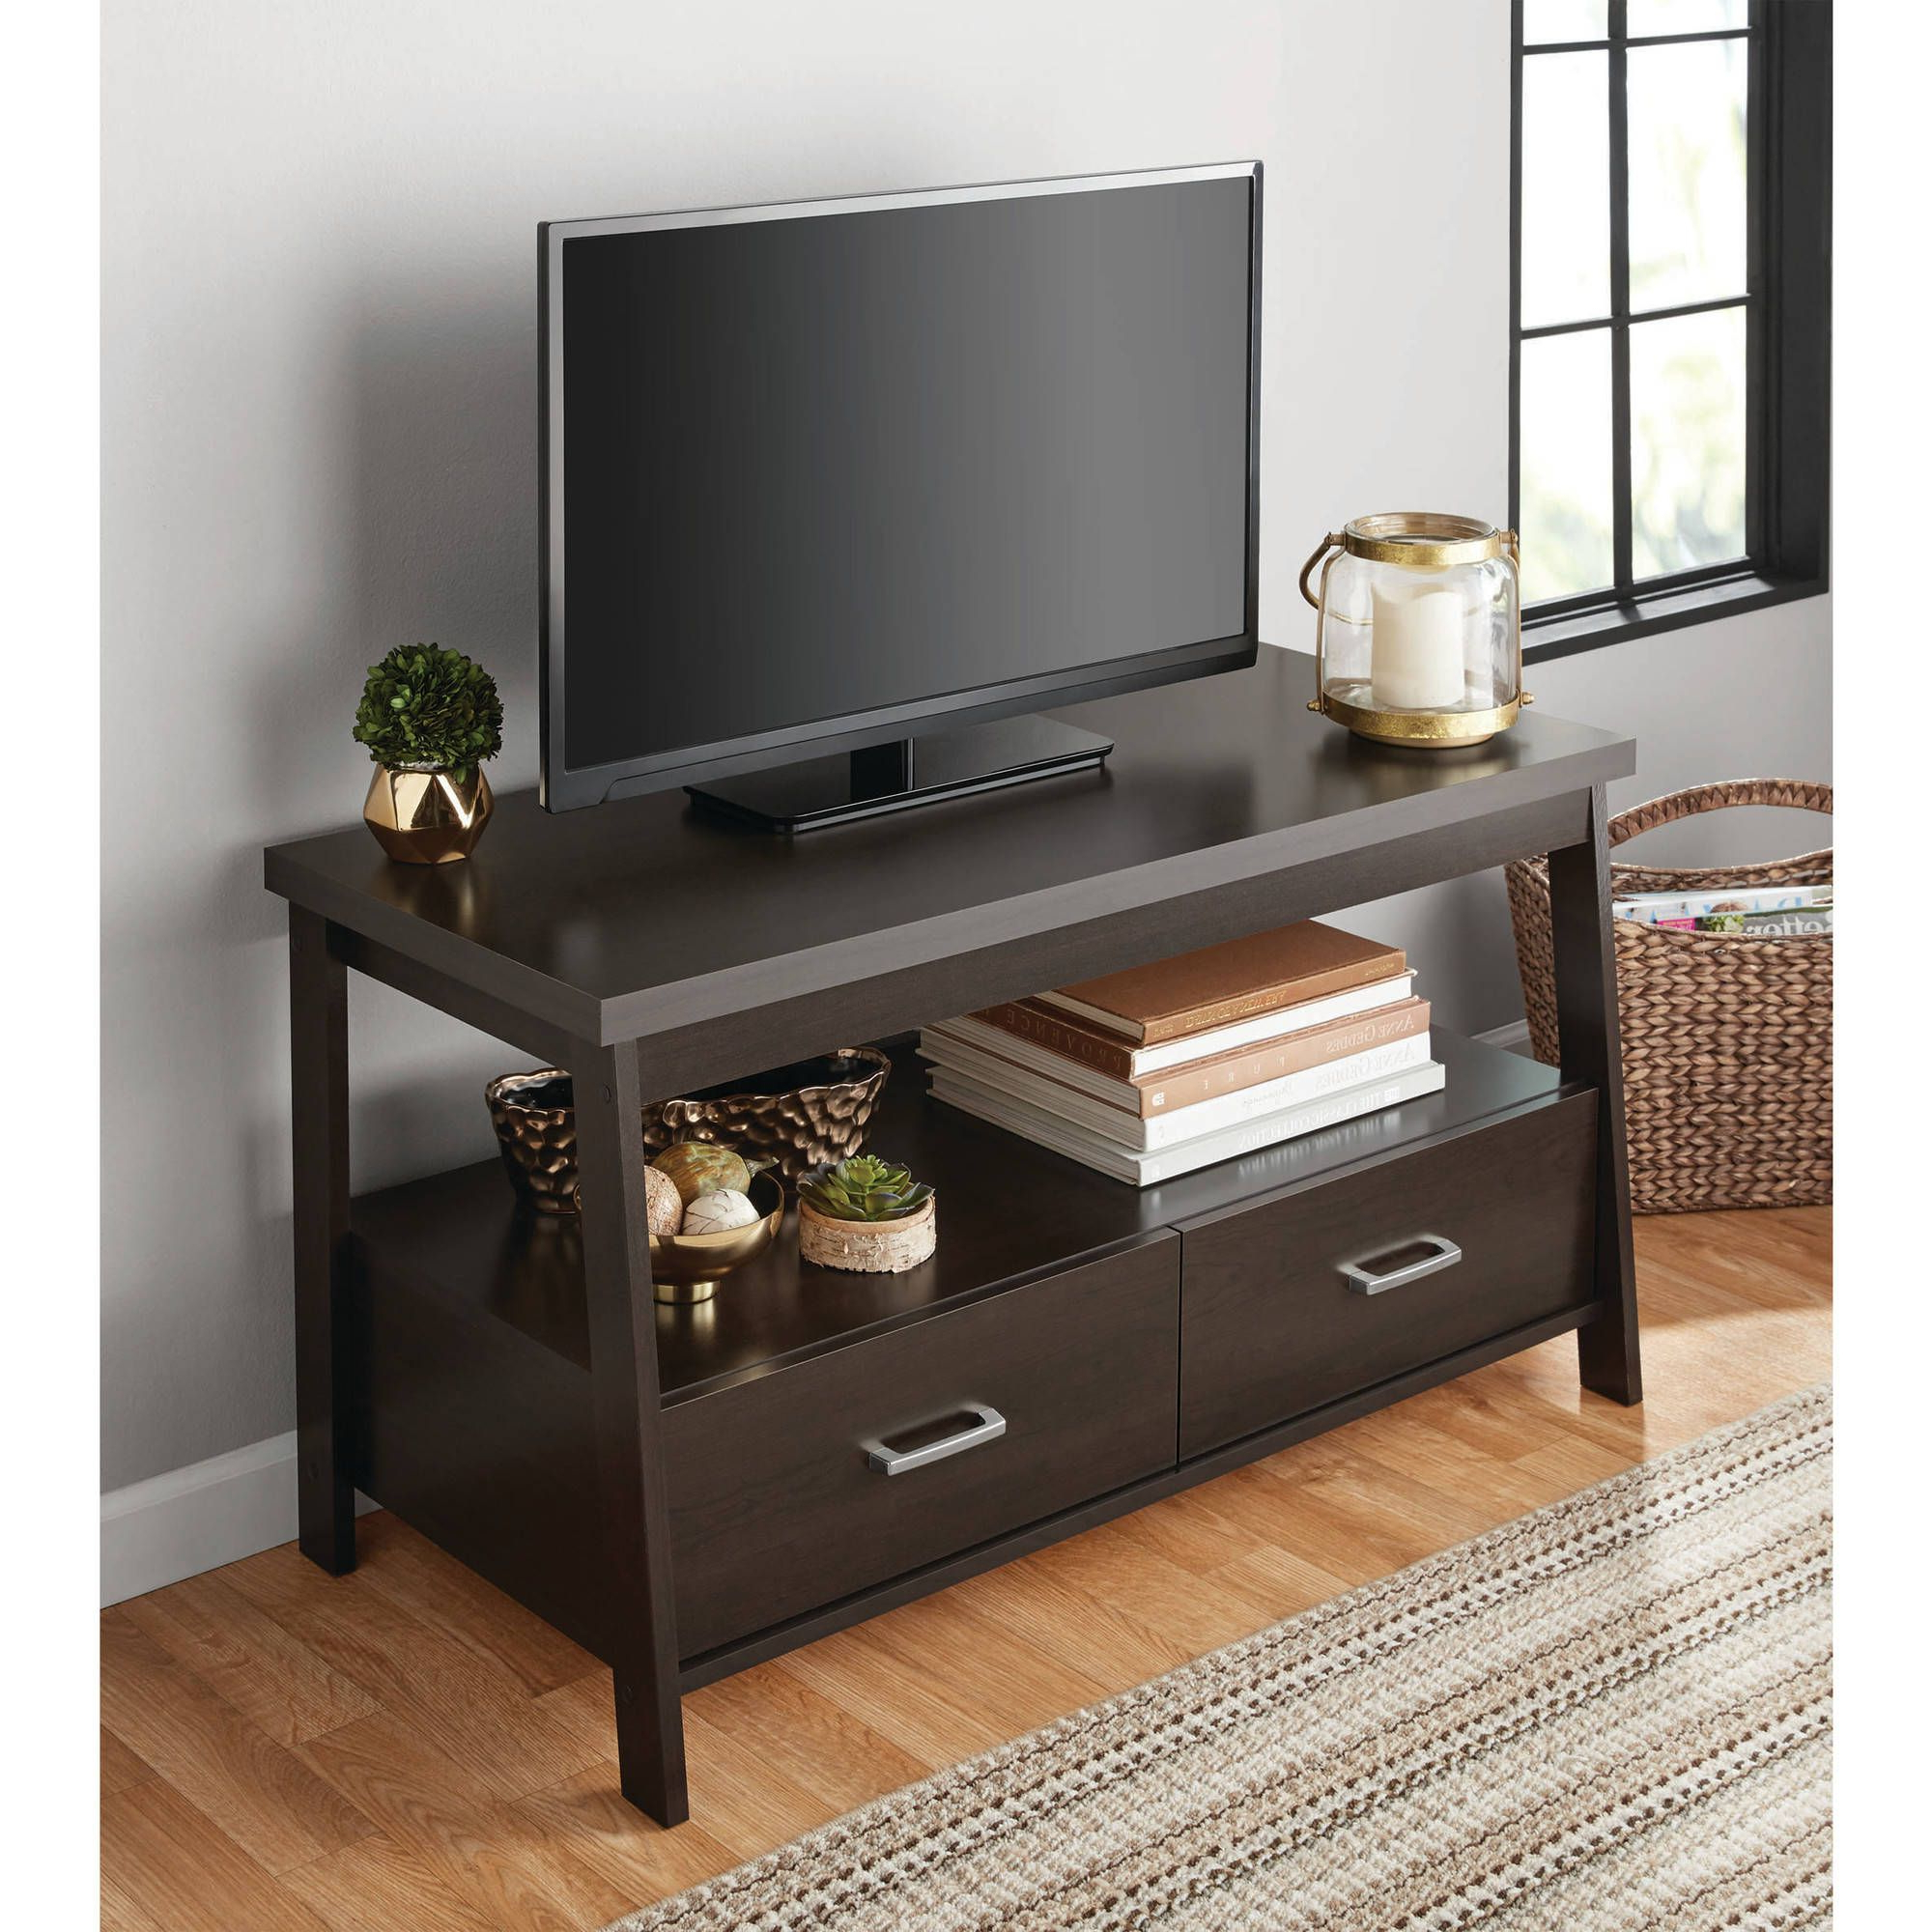 """Mainstays Logan Tv Stand For Tvs Up To 47"""", Espresso Throughout Famous Alden Design Wooden Tv Stands With Storage Cabinet Espresso (View 4 of 10)"""